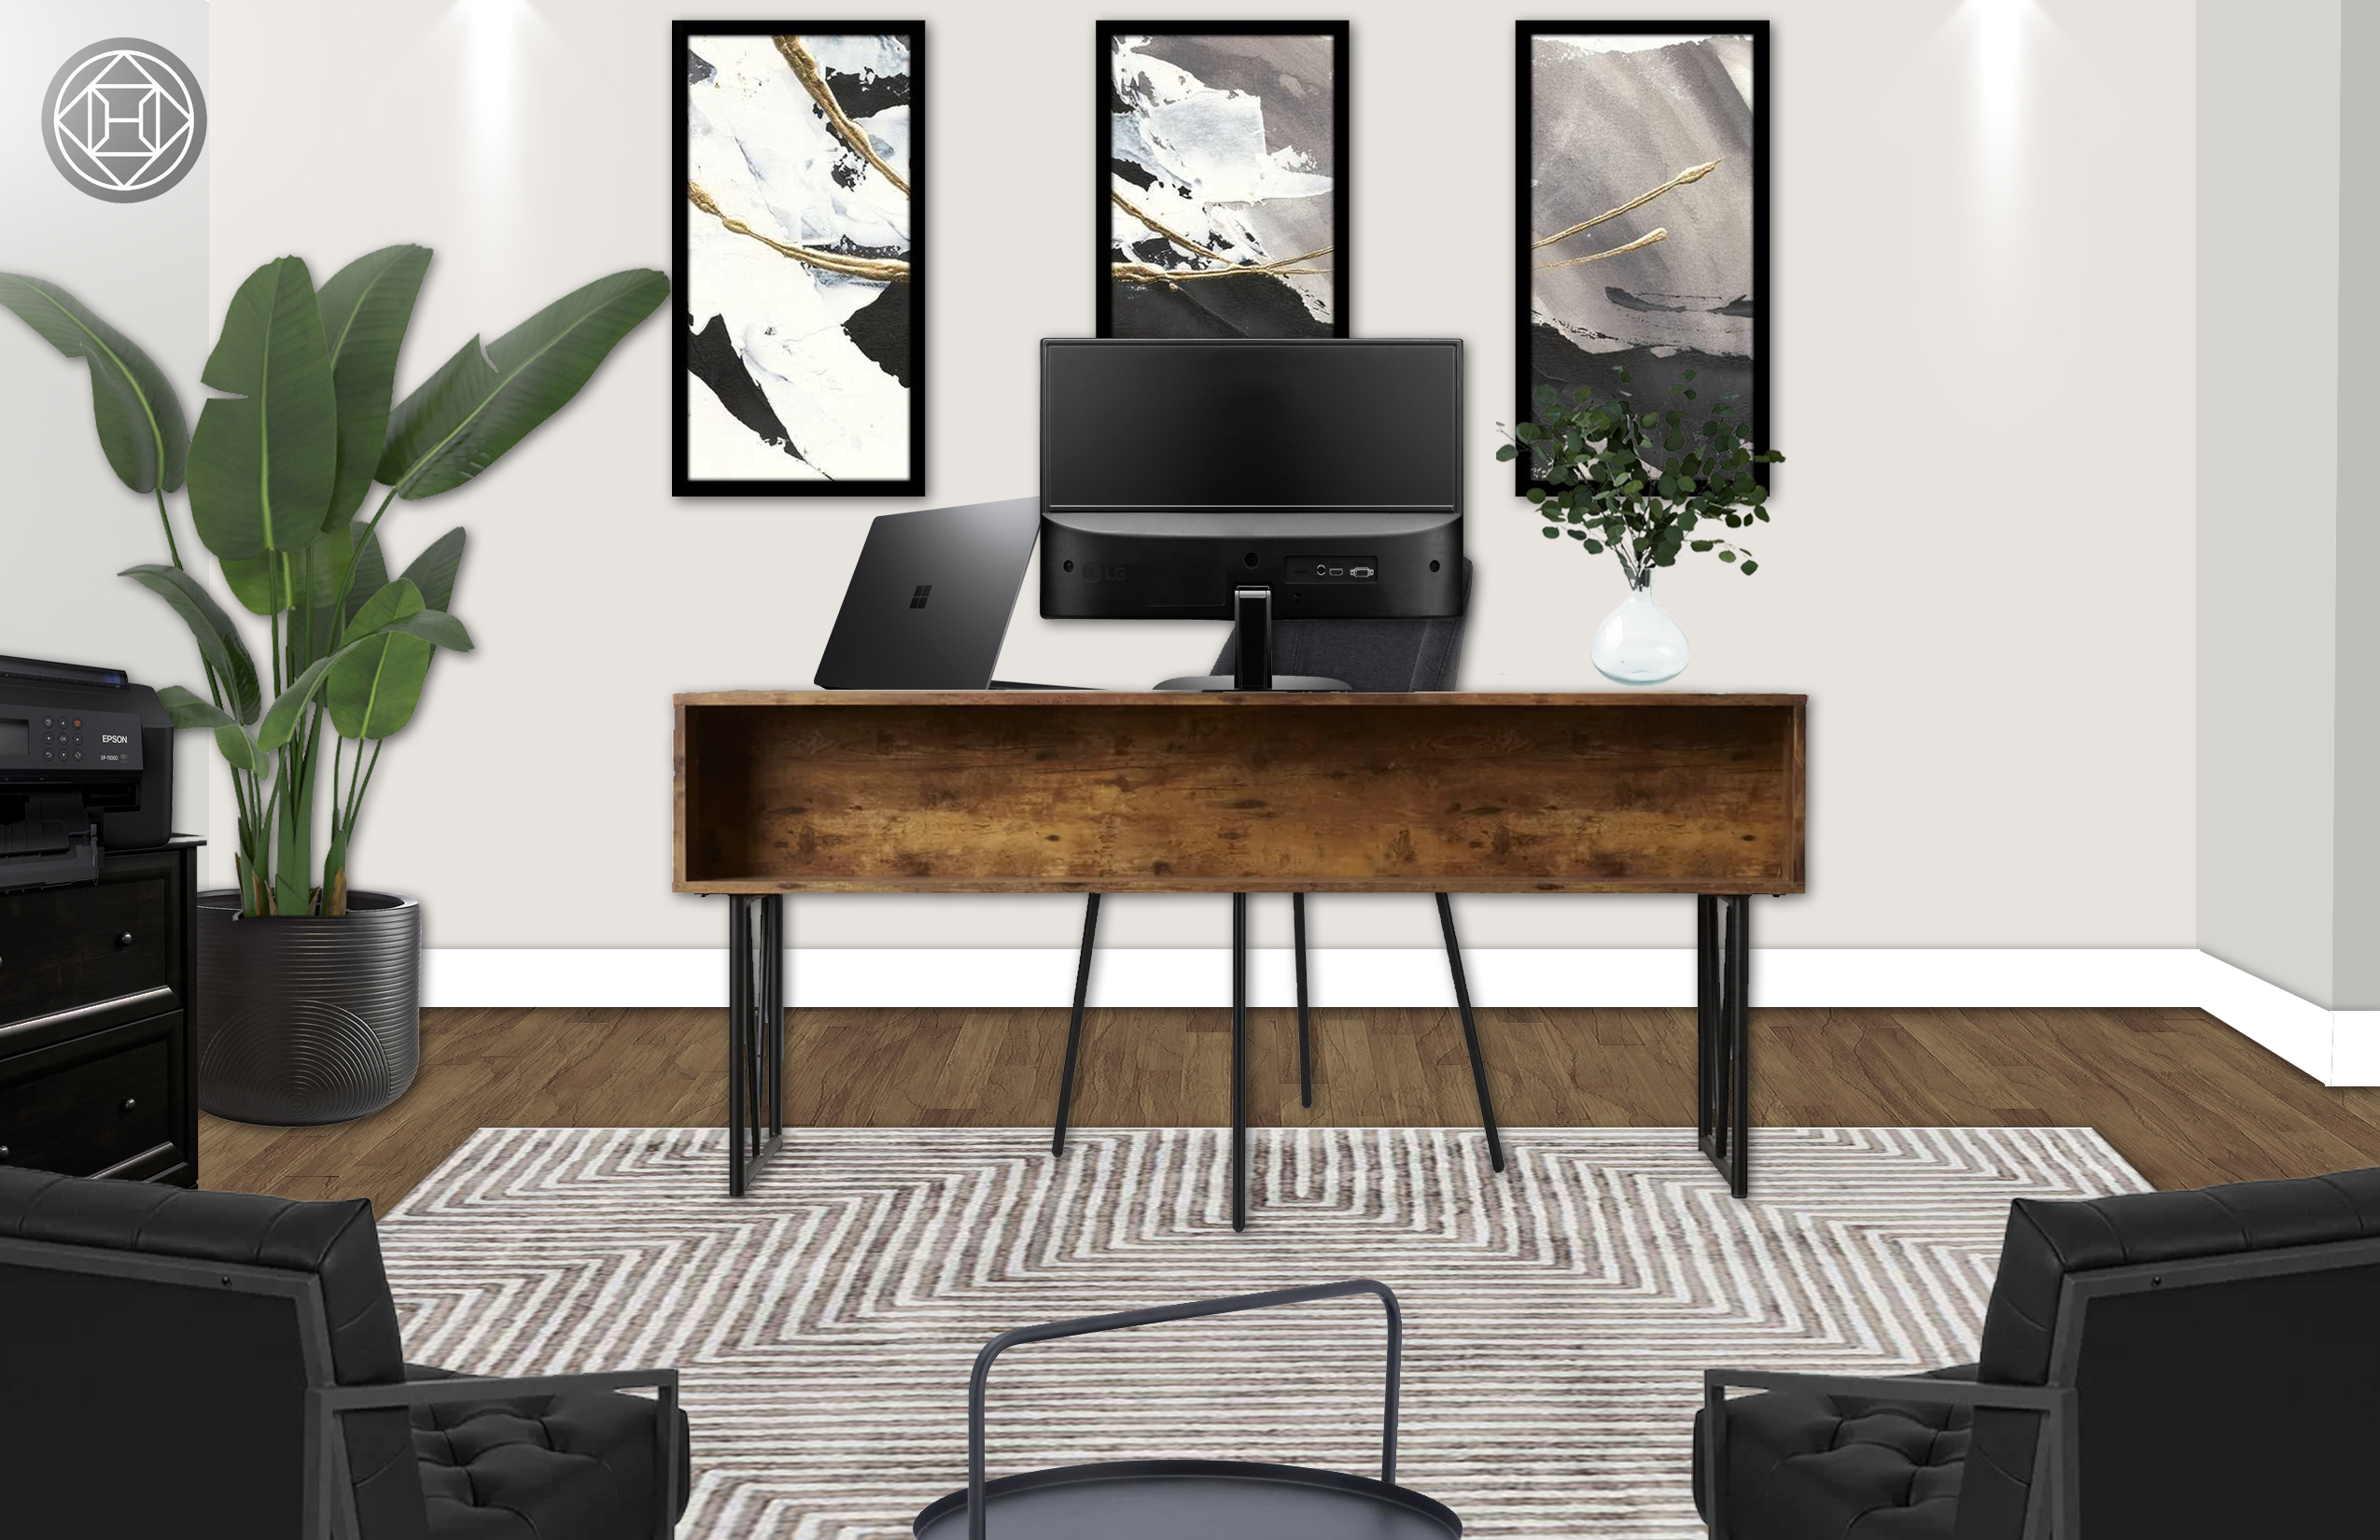 Industrial, Midcentury Modern Office Design by Havenly Interior